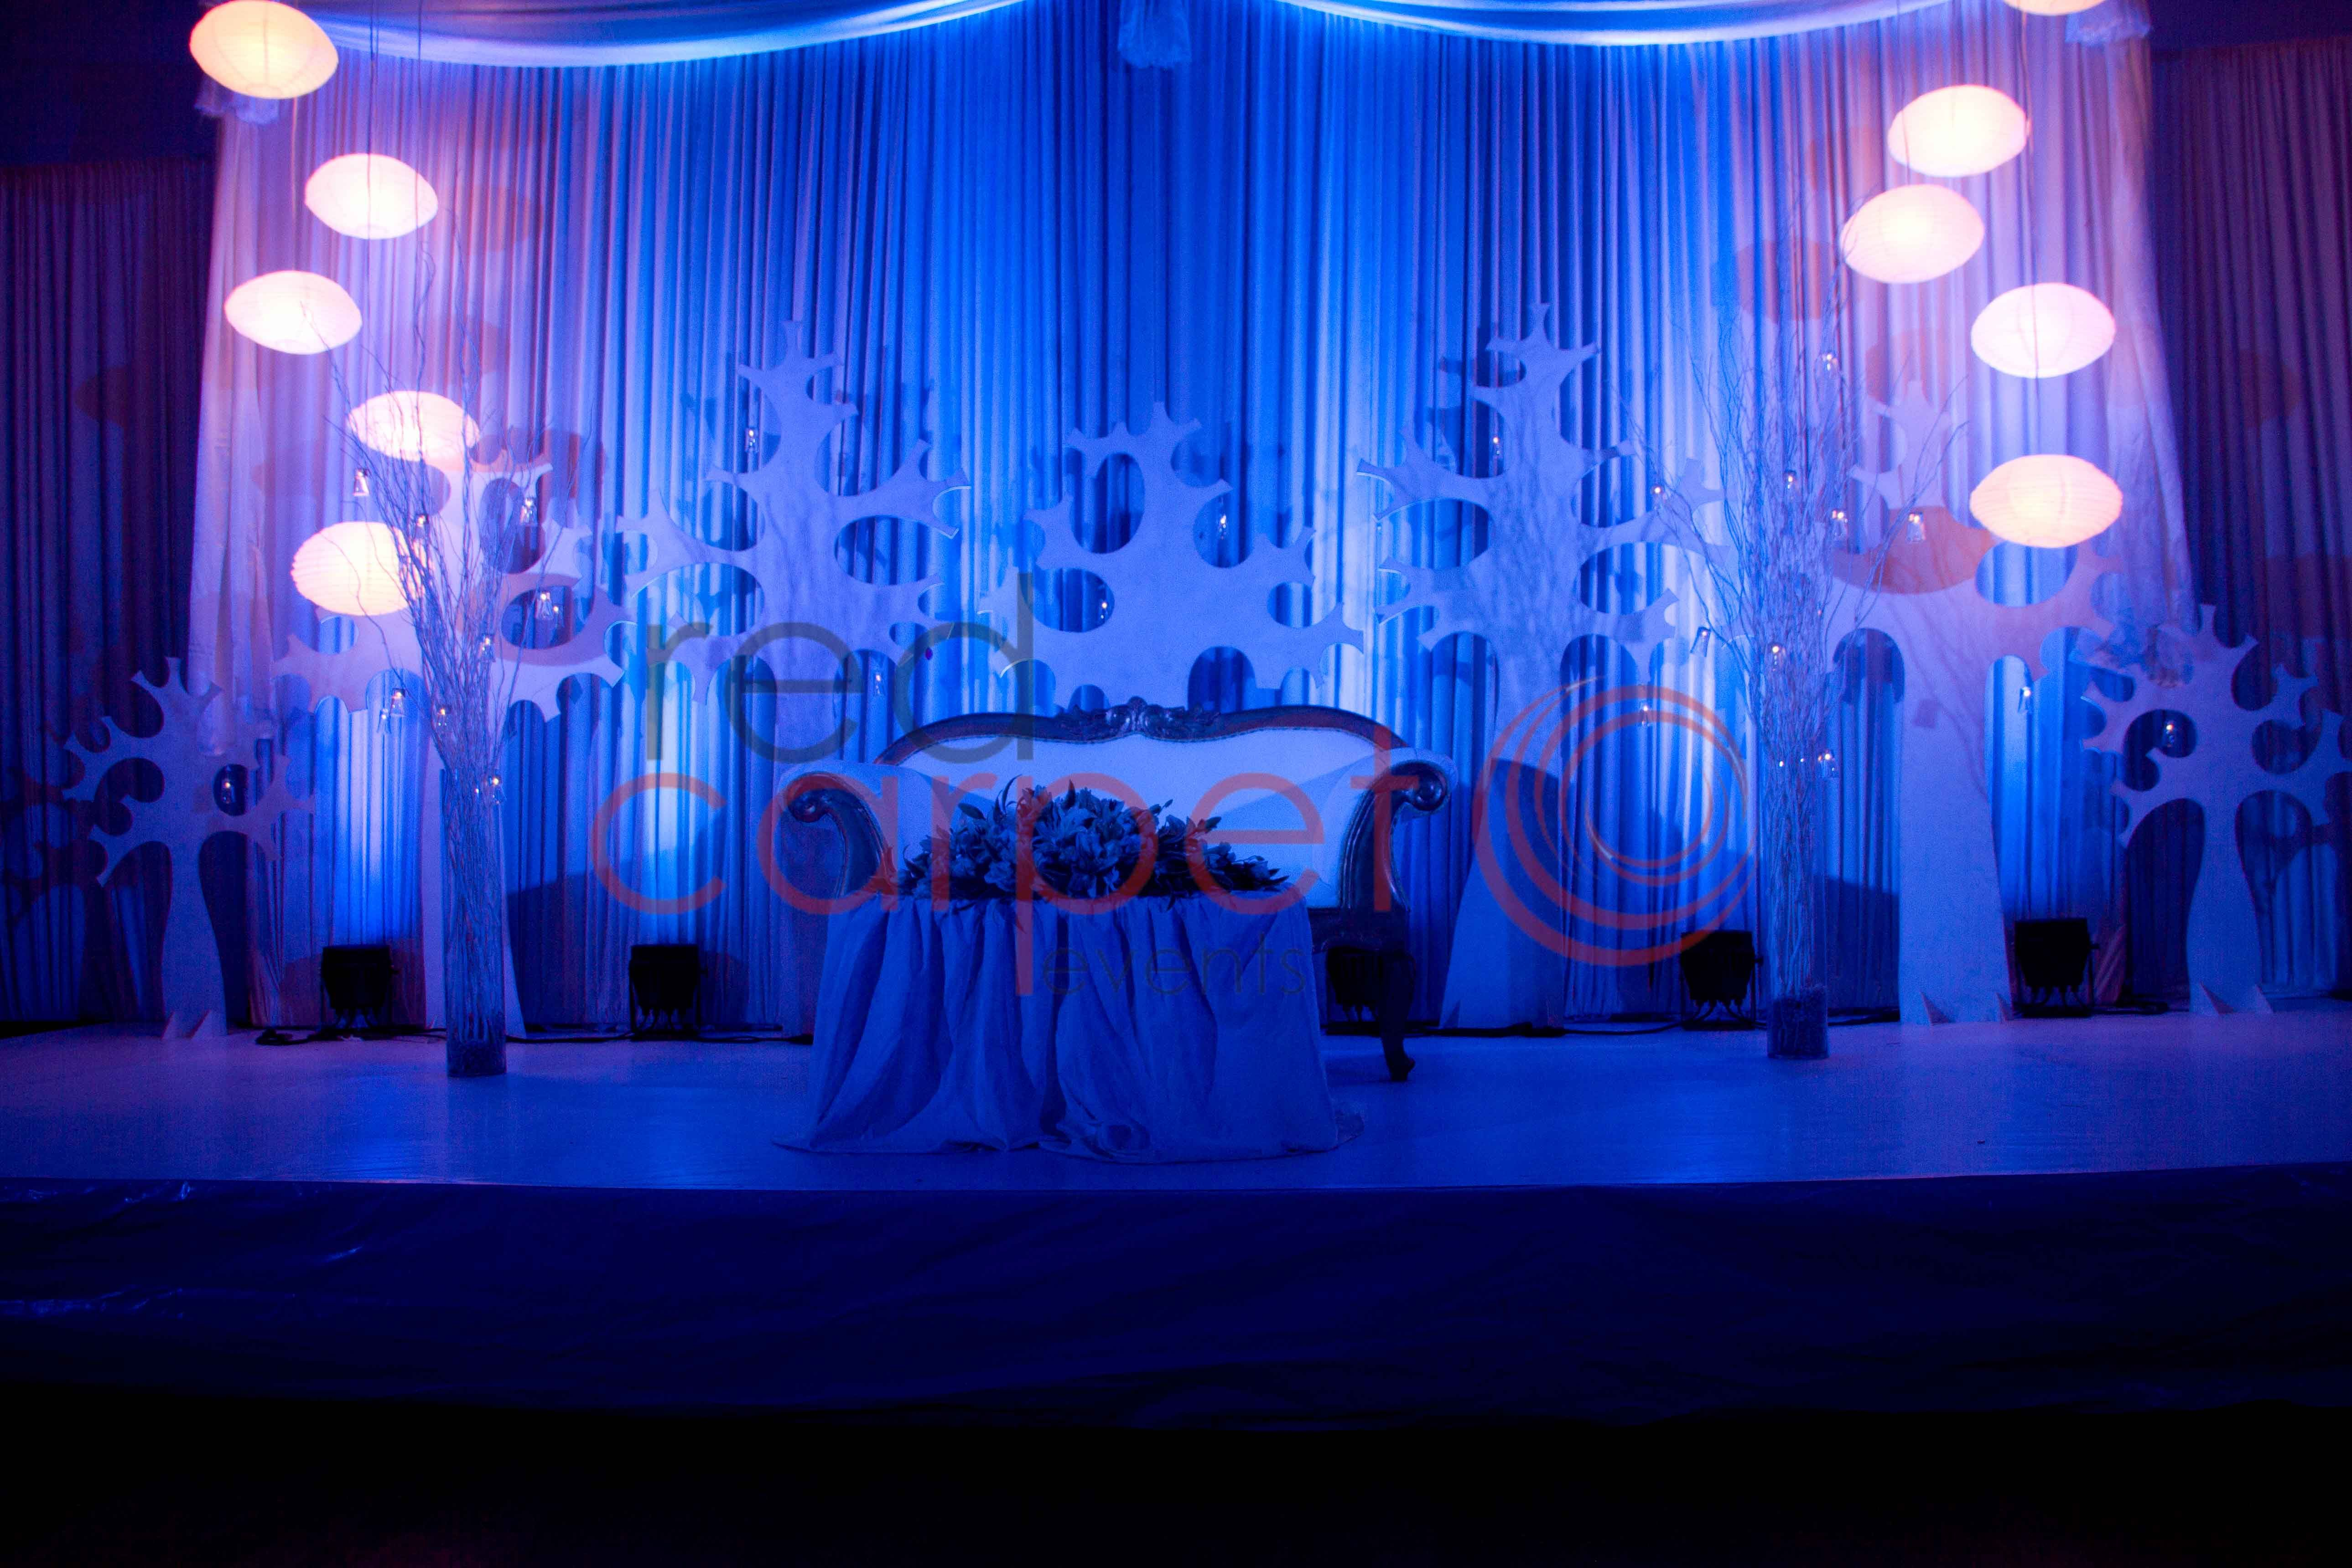 blue & white wedding reception stage | red carpet events - wedding